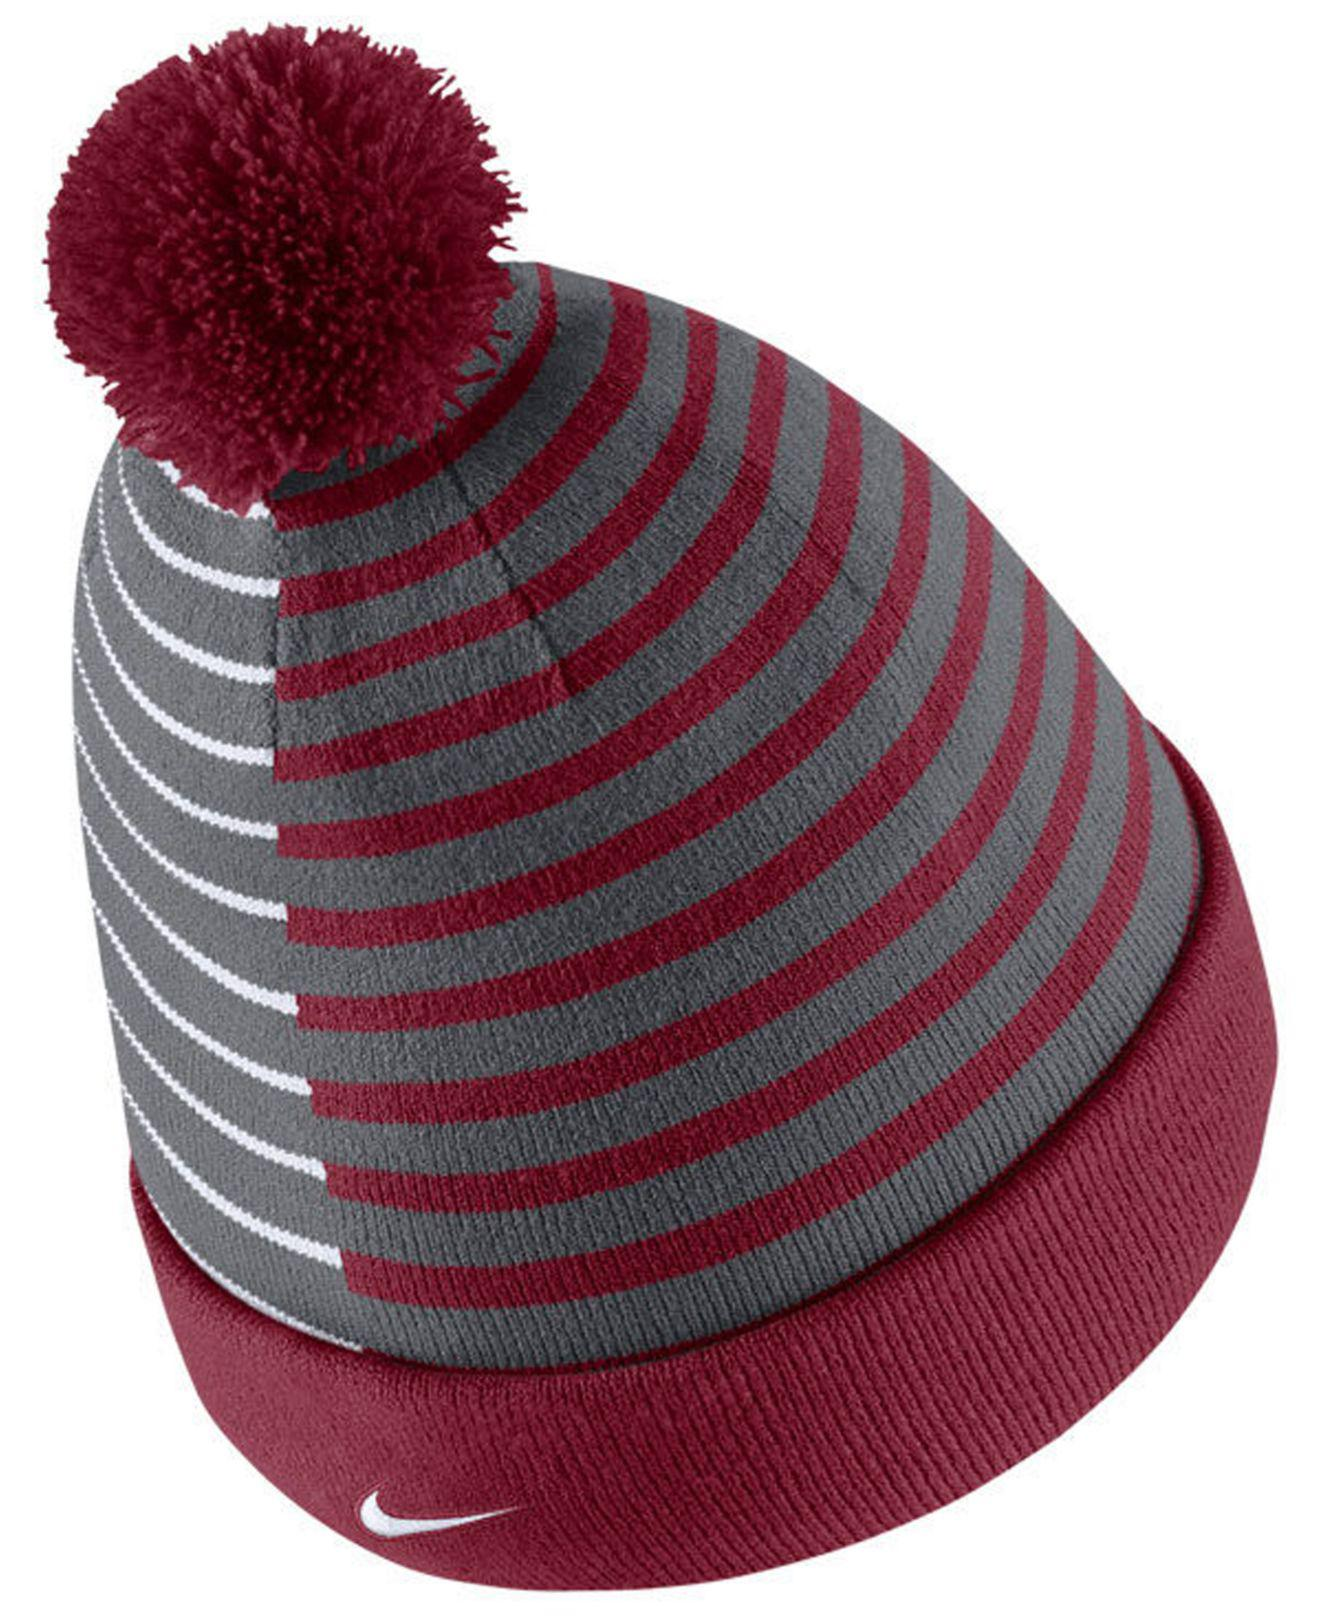 buy online 10288 8bf68 Lyst - Nike Oklahoma Sooners Striped Beanie Knit Hat in Red